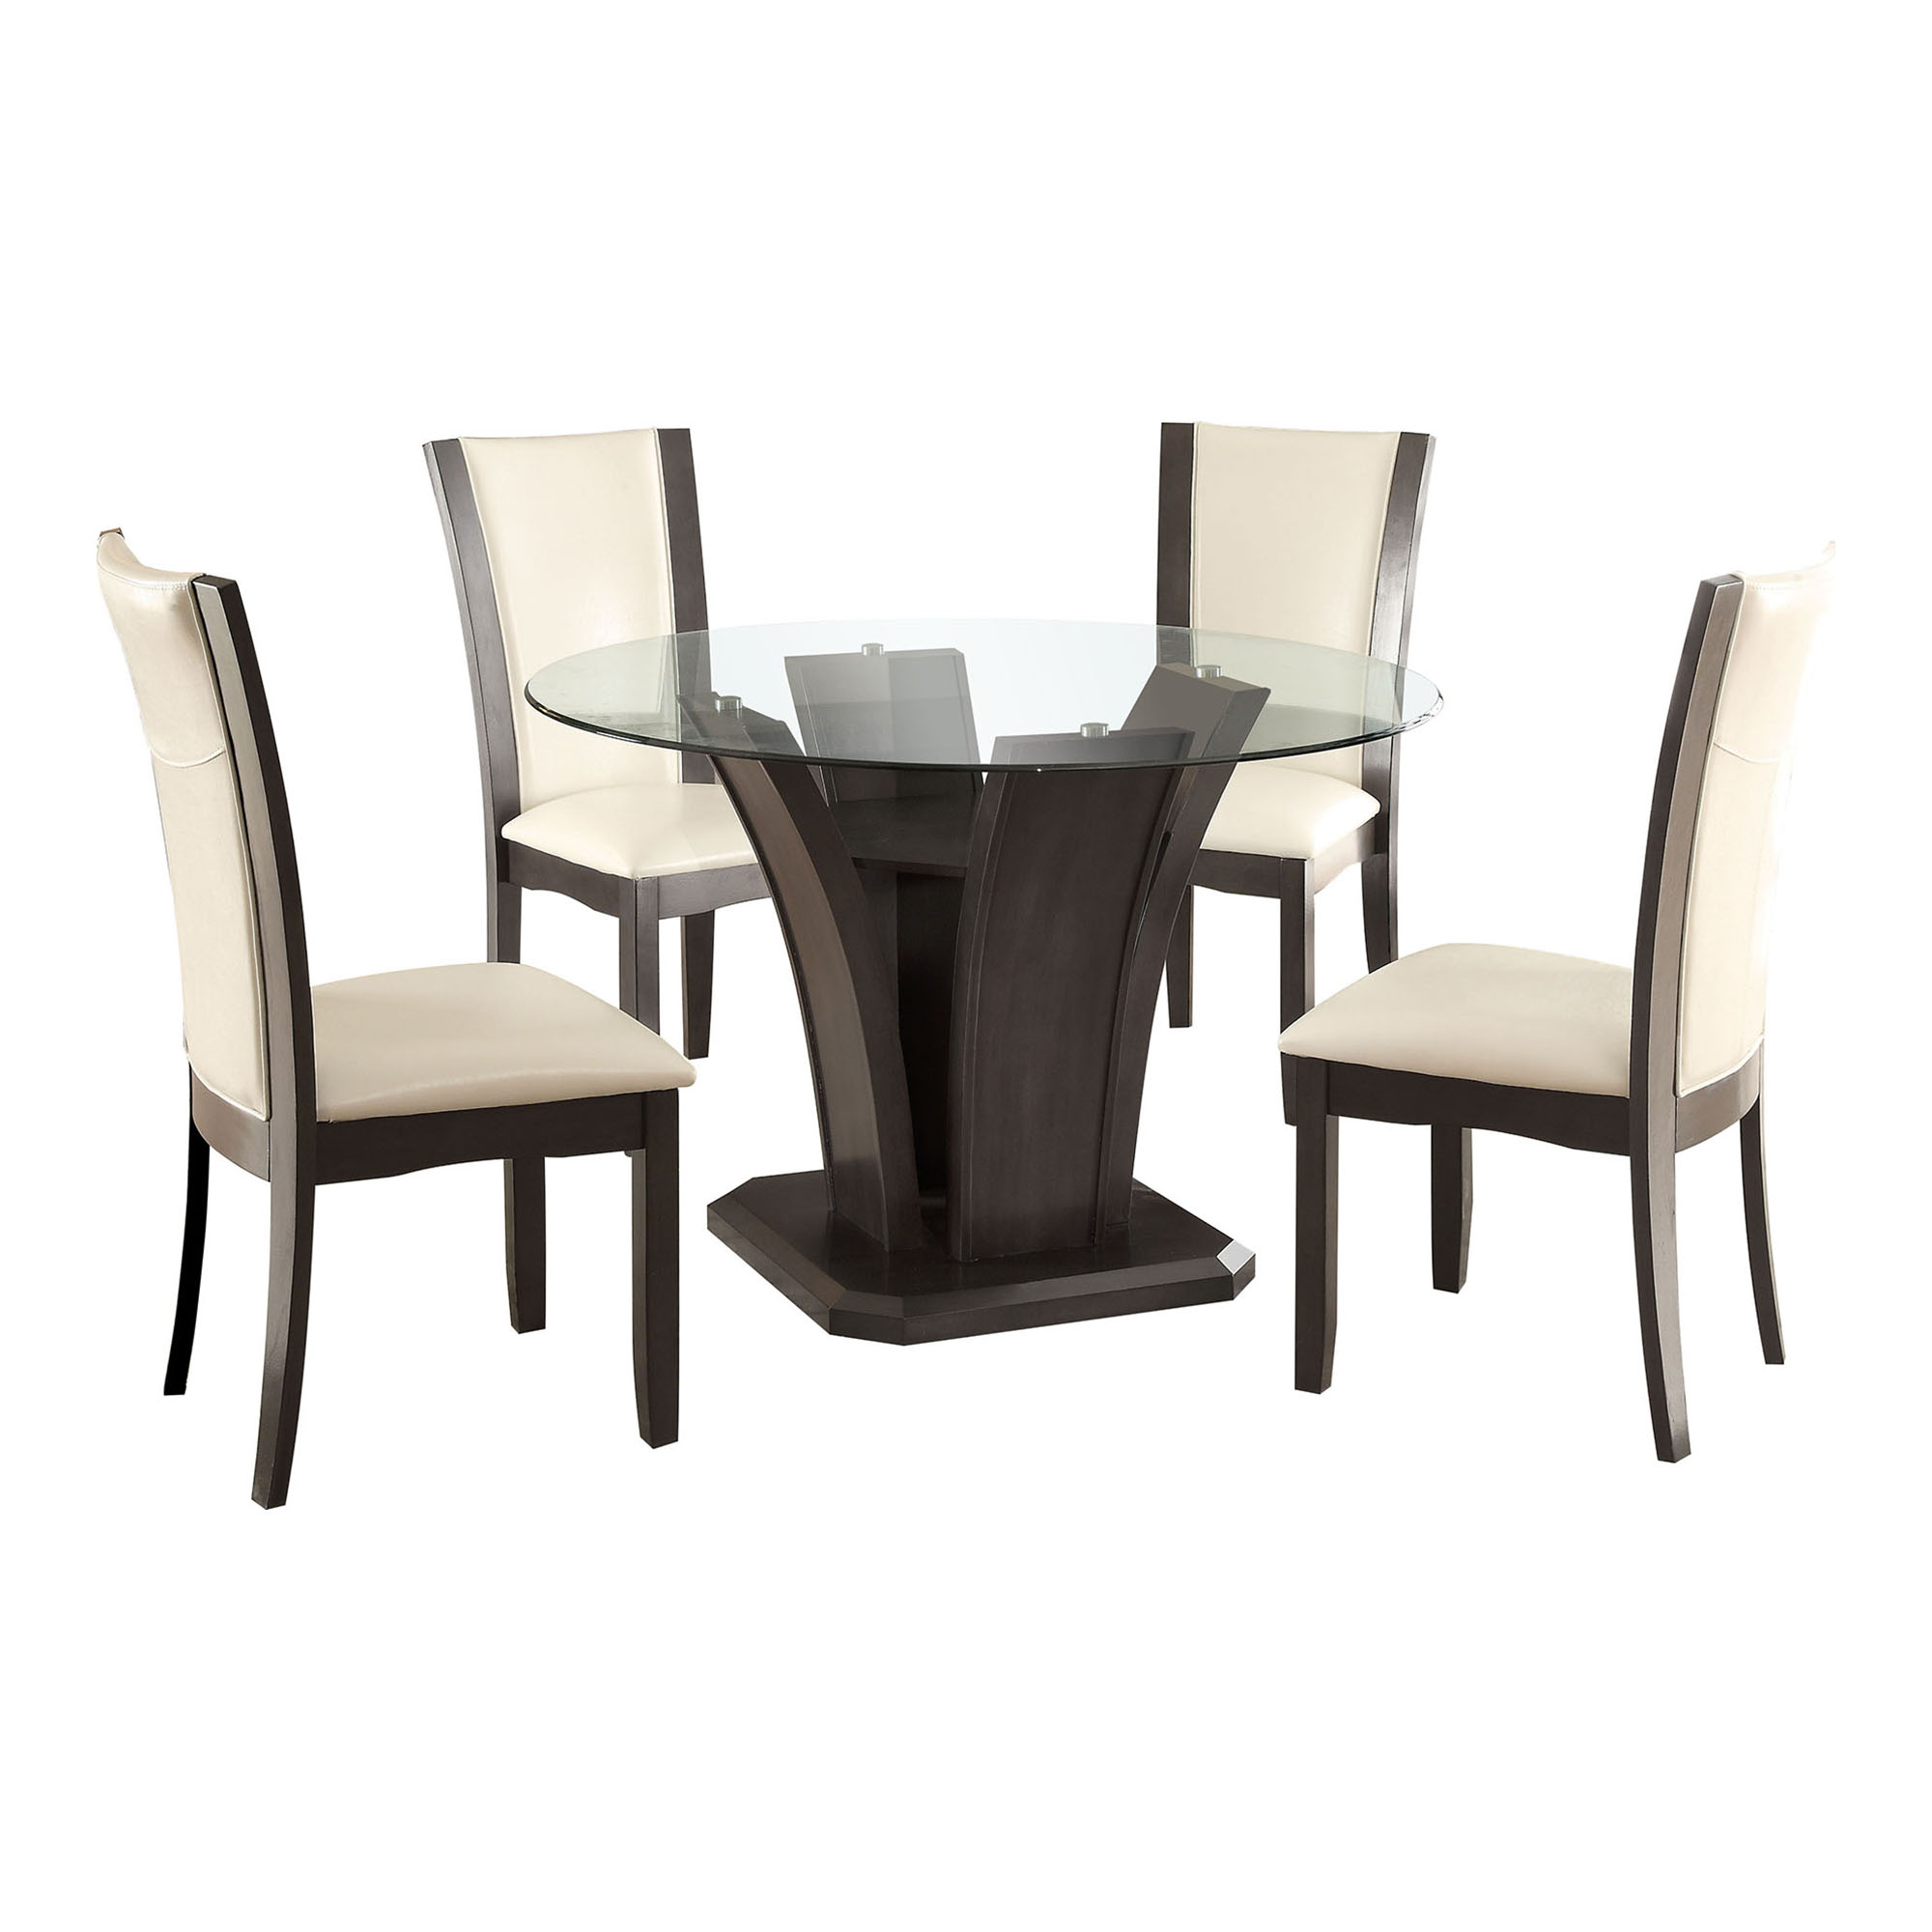 Gentil Furniture Of America Lavelle 7 Piece Tempered Glass Top Dining Table Set    White | Hayneedle